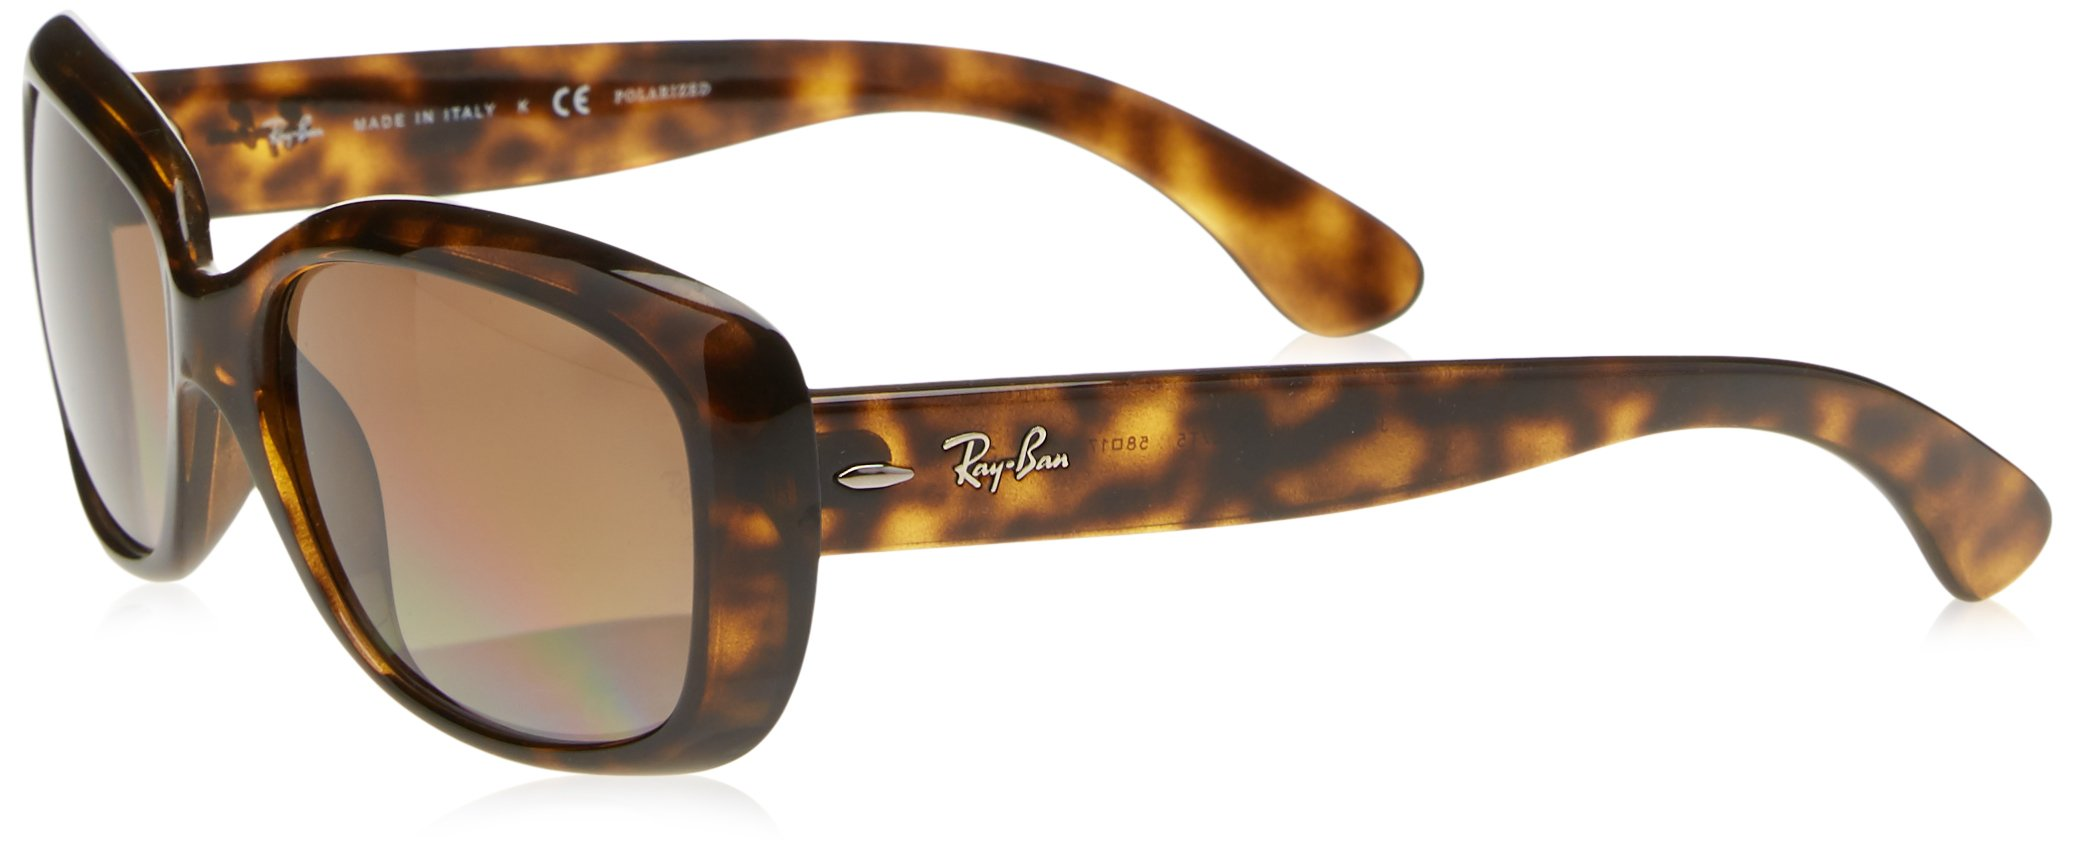 RAY-BAN Women's RB4101 Jackie Ohh Sunglasses, Light Havana/Polarized Brown Gradient, 58 mm by RAY-BAN